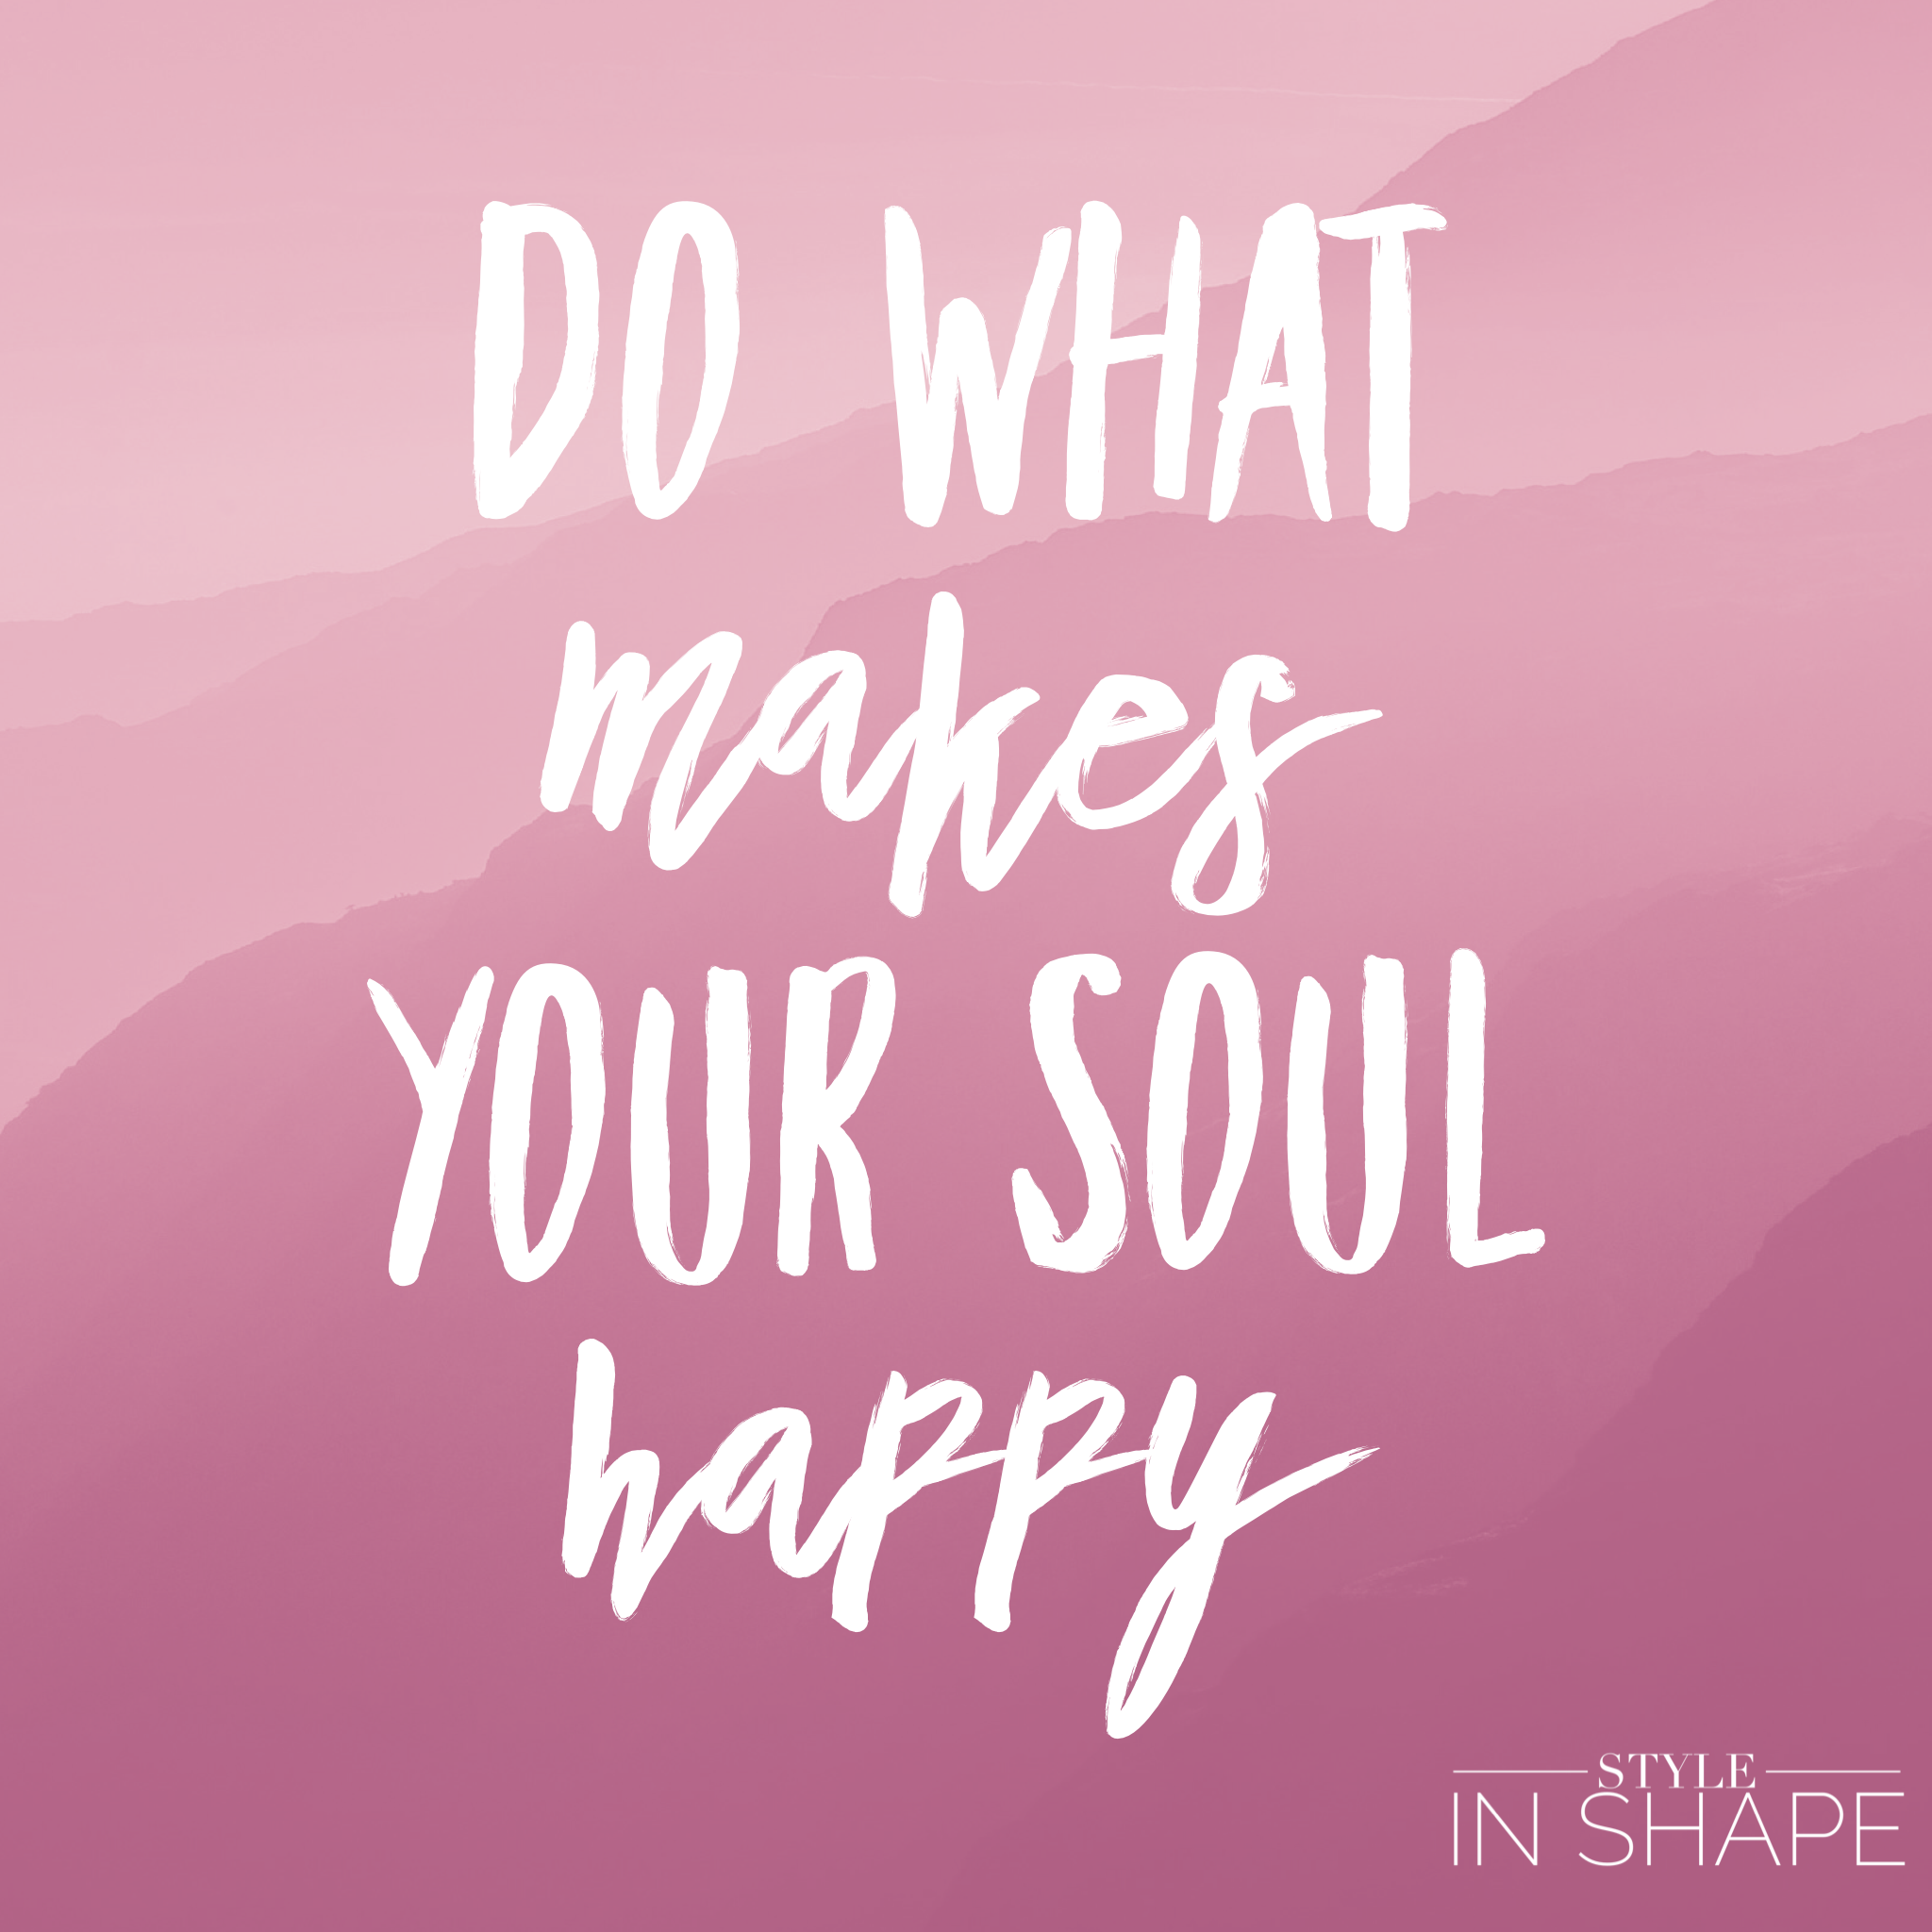 Do what makes your soul happy - STYLE IN SHAPE